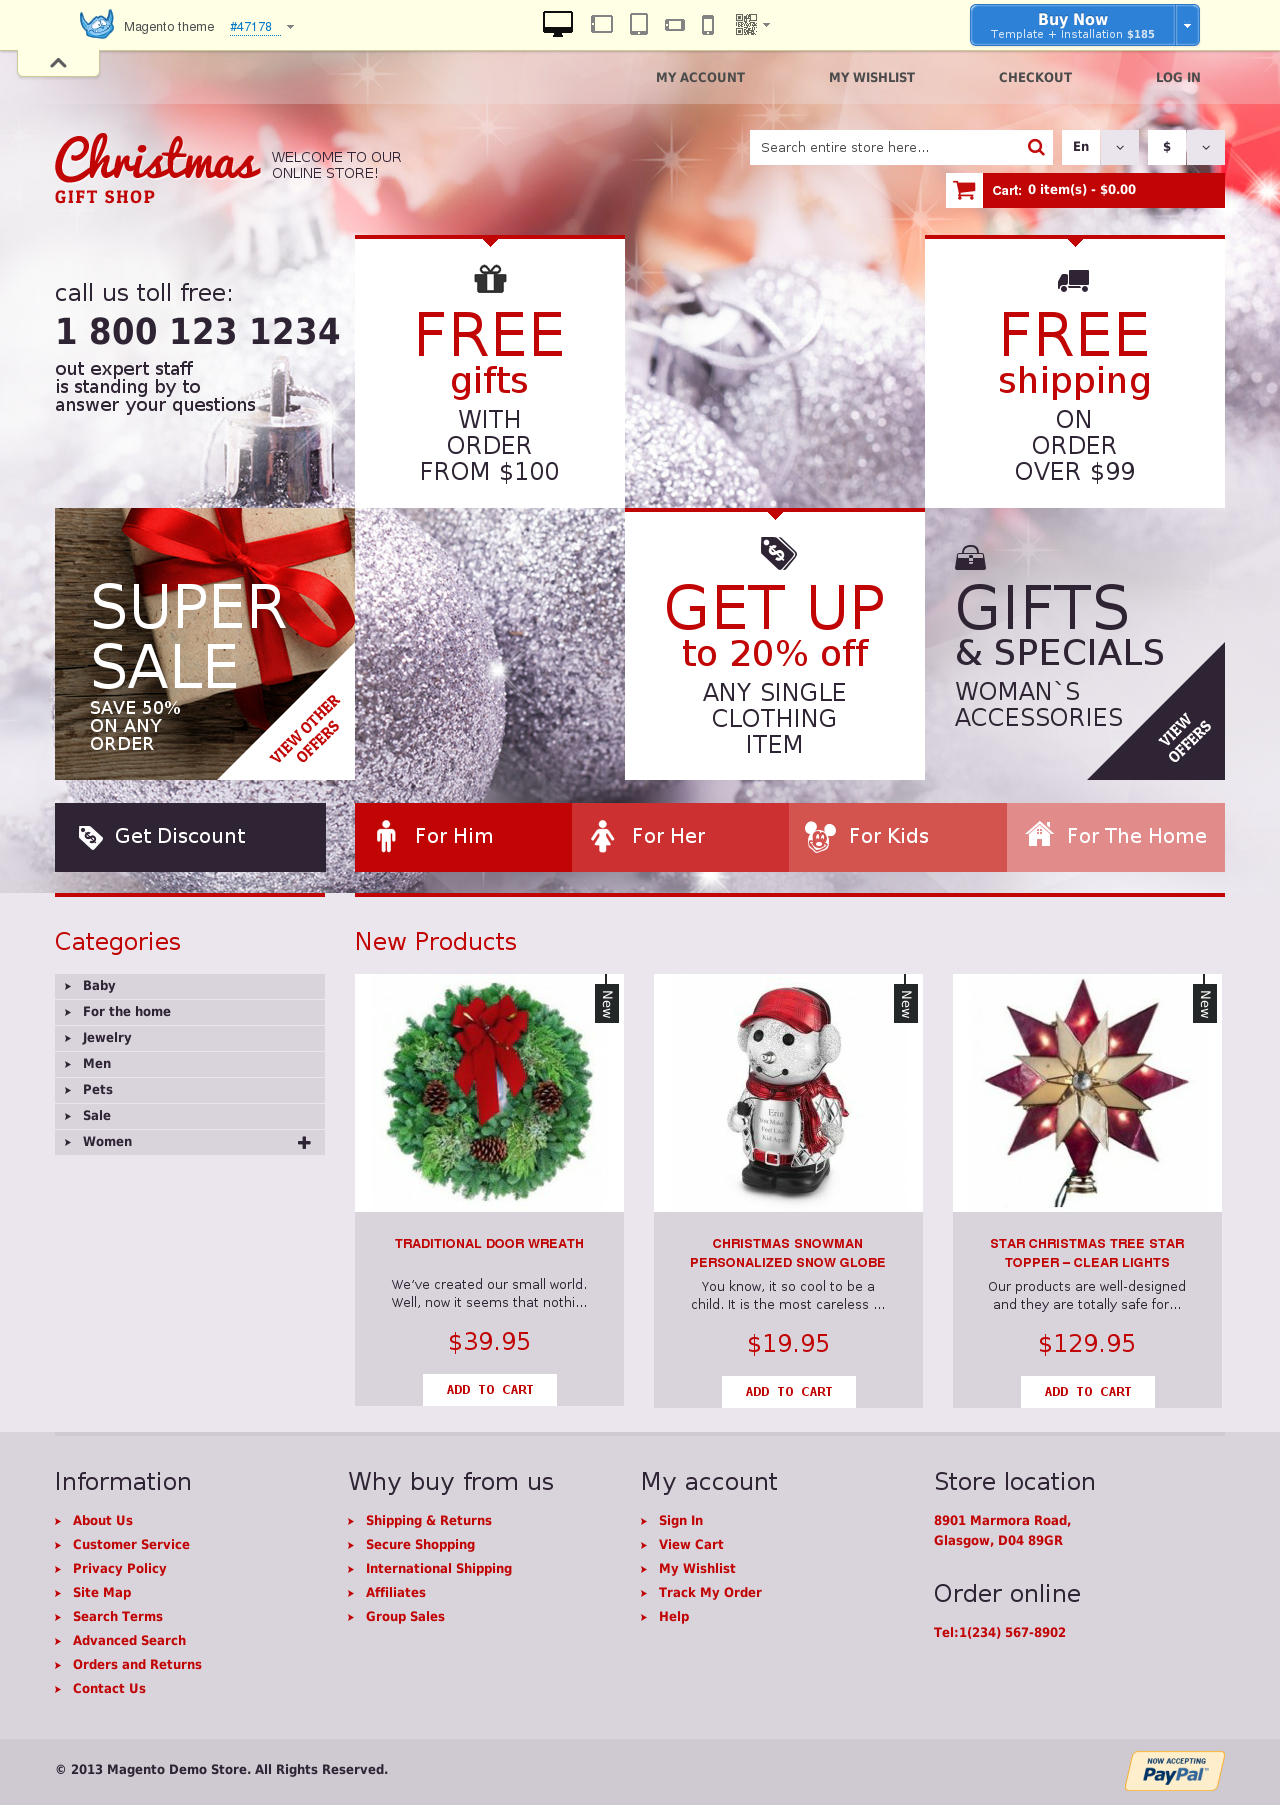 Christmas Gift Shop Magento Theme #47178